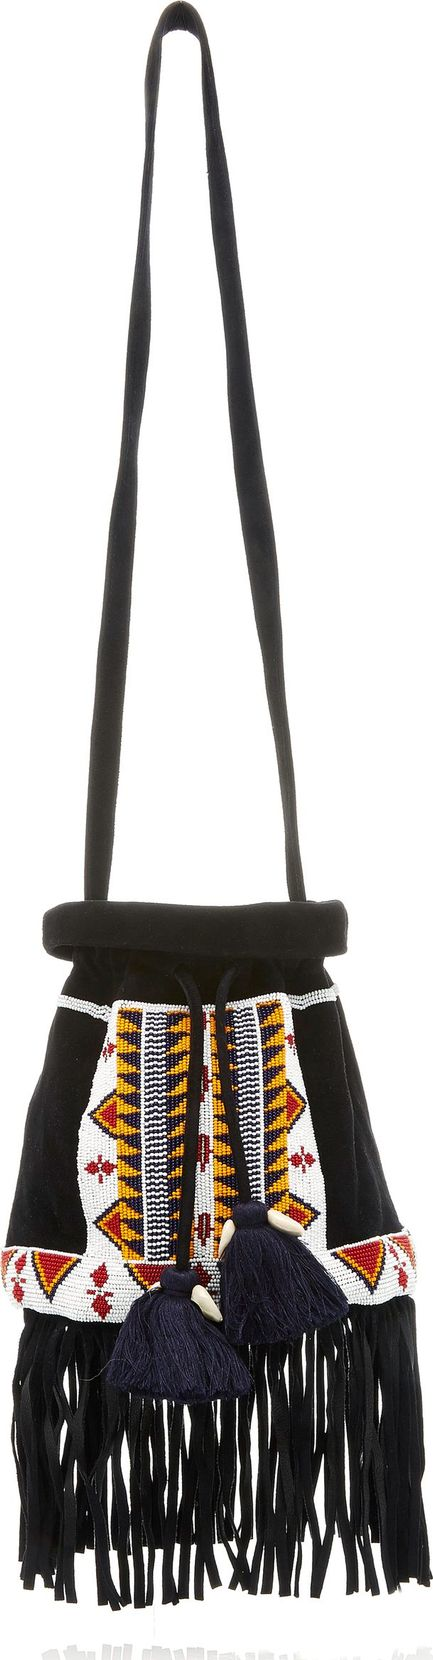 FIGUE Tribal Bag